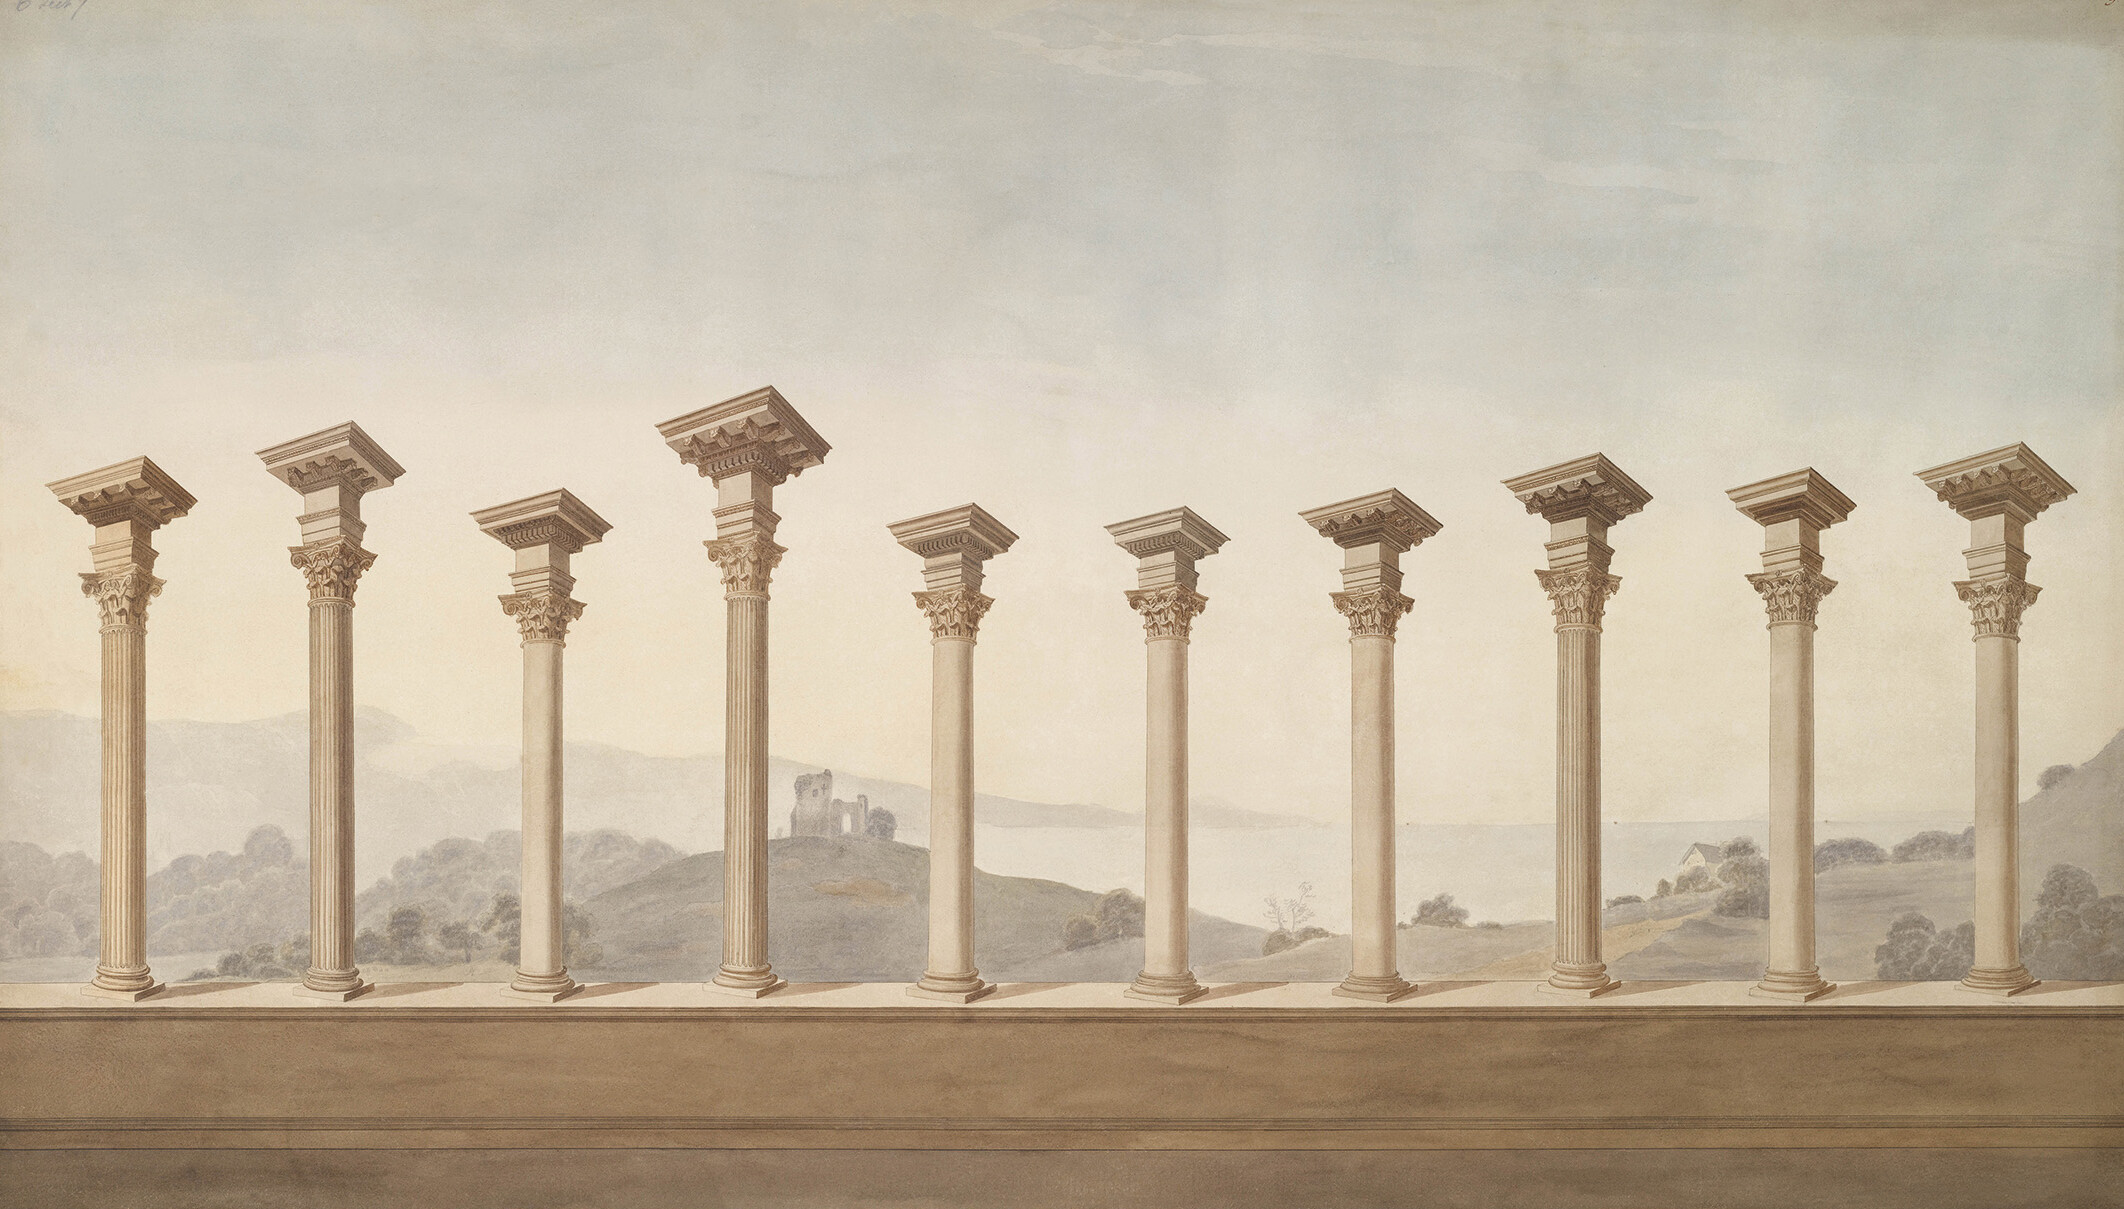 Corinthian orders: comparative perspectives after Fréart